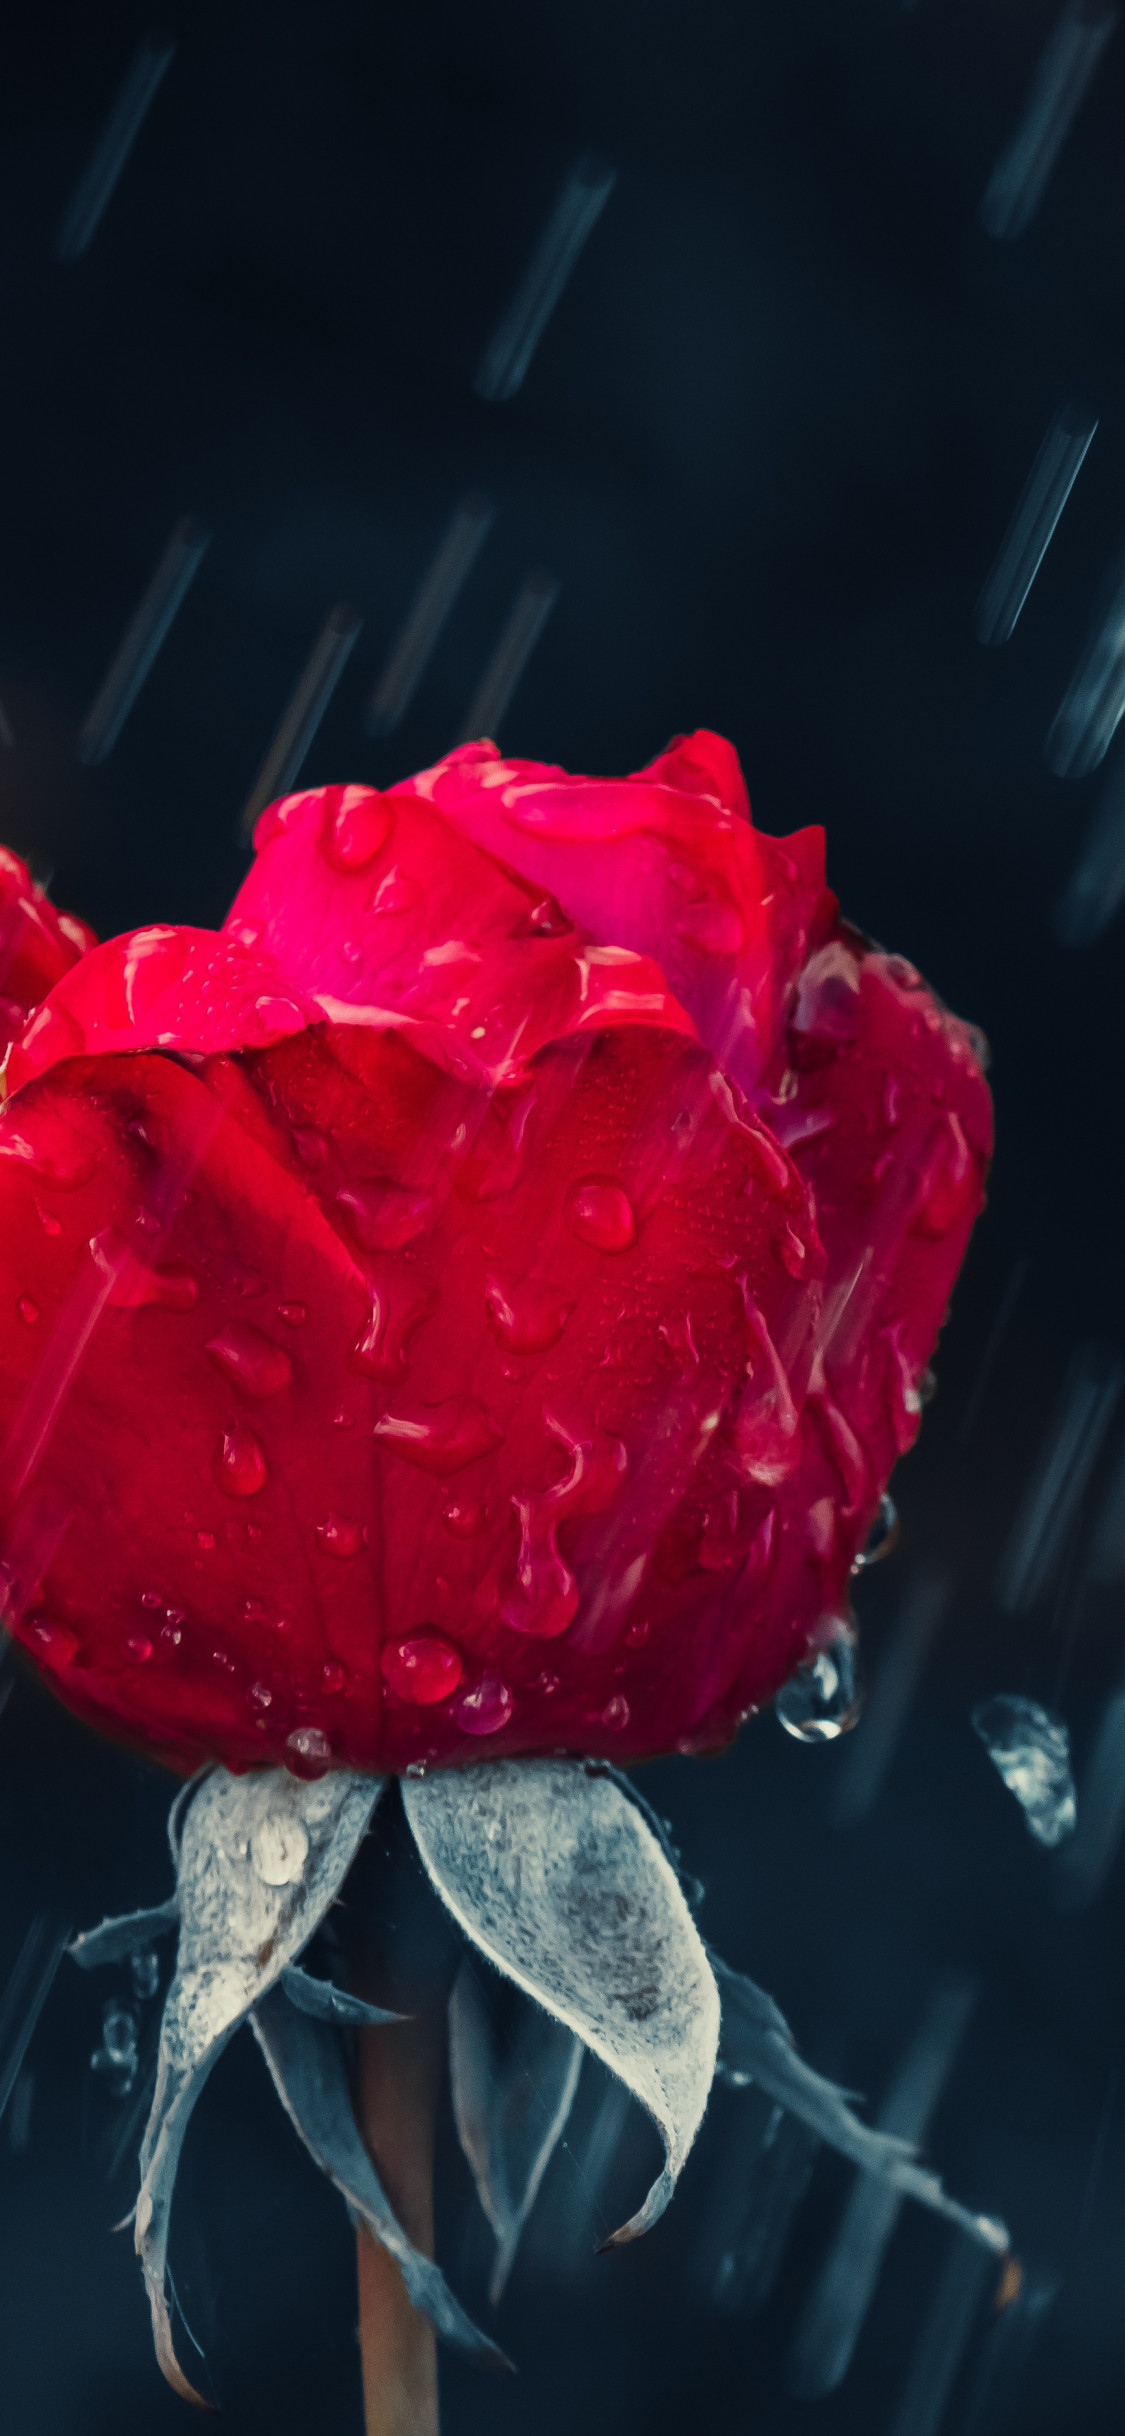 Red rose and raindrops wallpaper 1125x2436